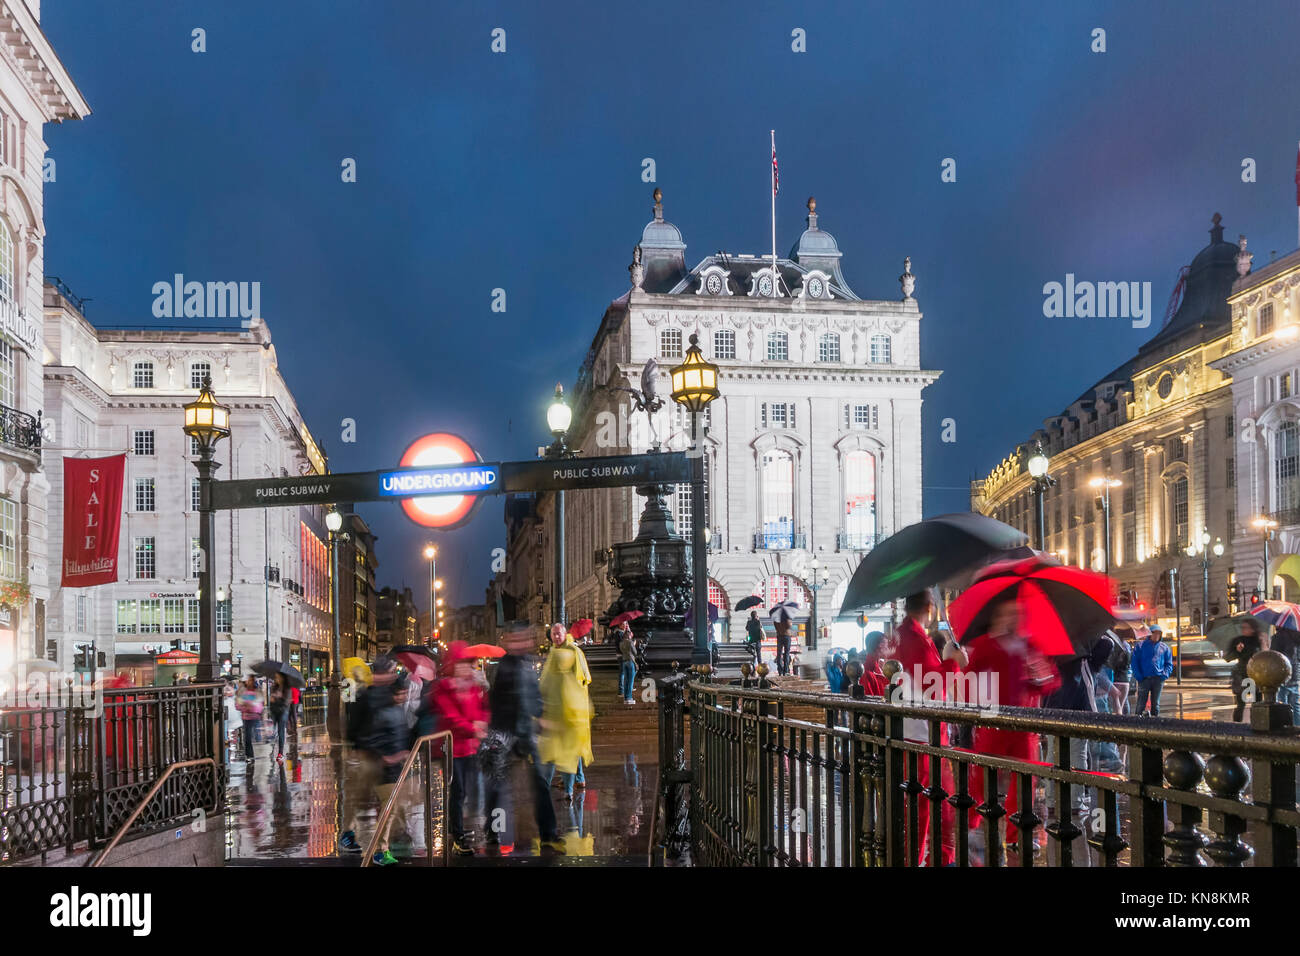 People with umbrellas, Piccadilly circus, rain, evening, Subway entrance, London, UK Stock Photo